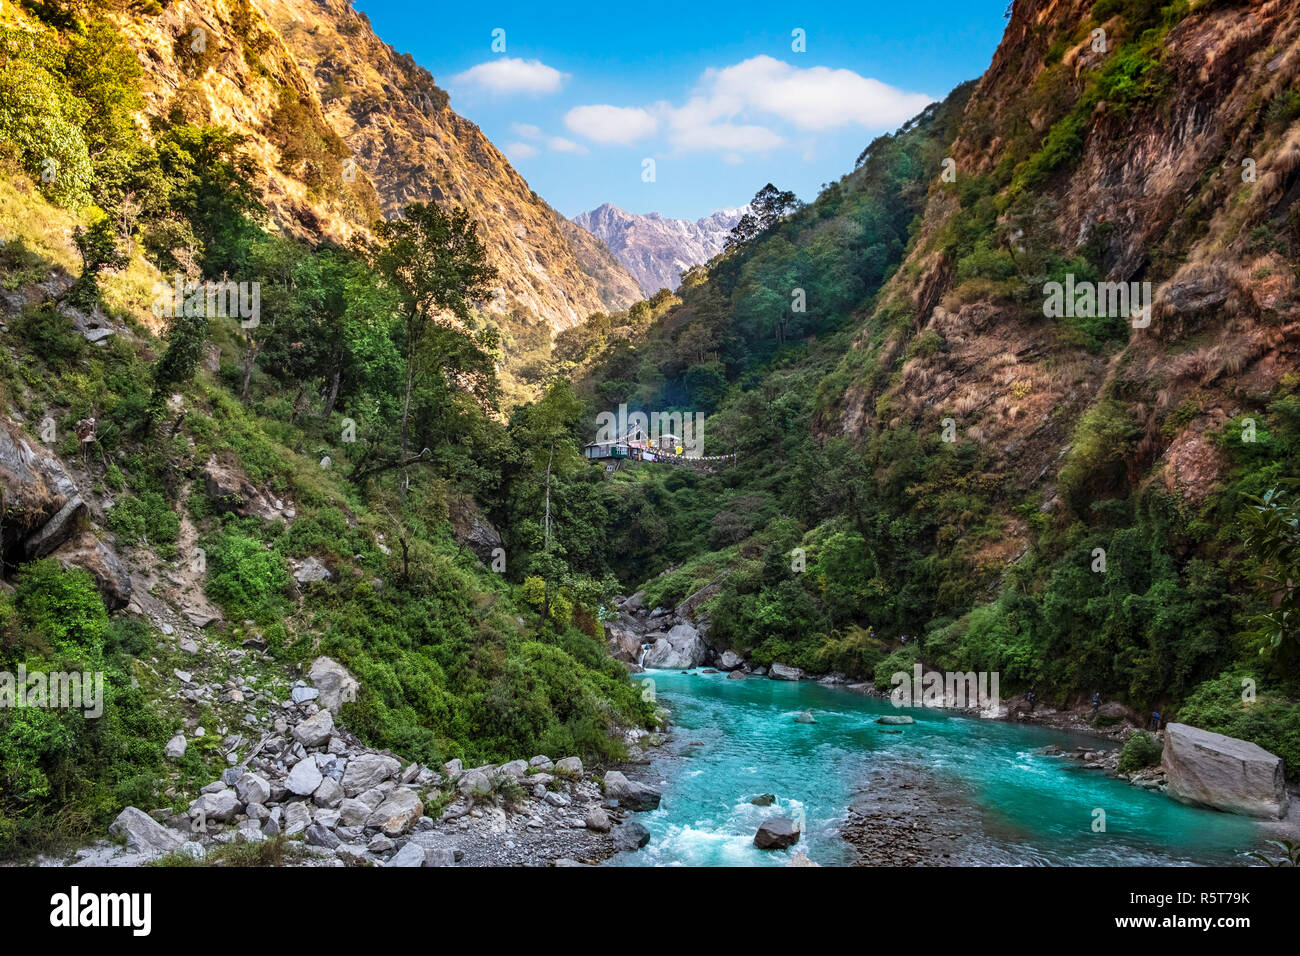 Langtang river in Nepal with human settlement in the background - Stock Image